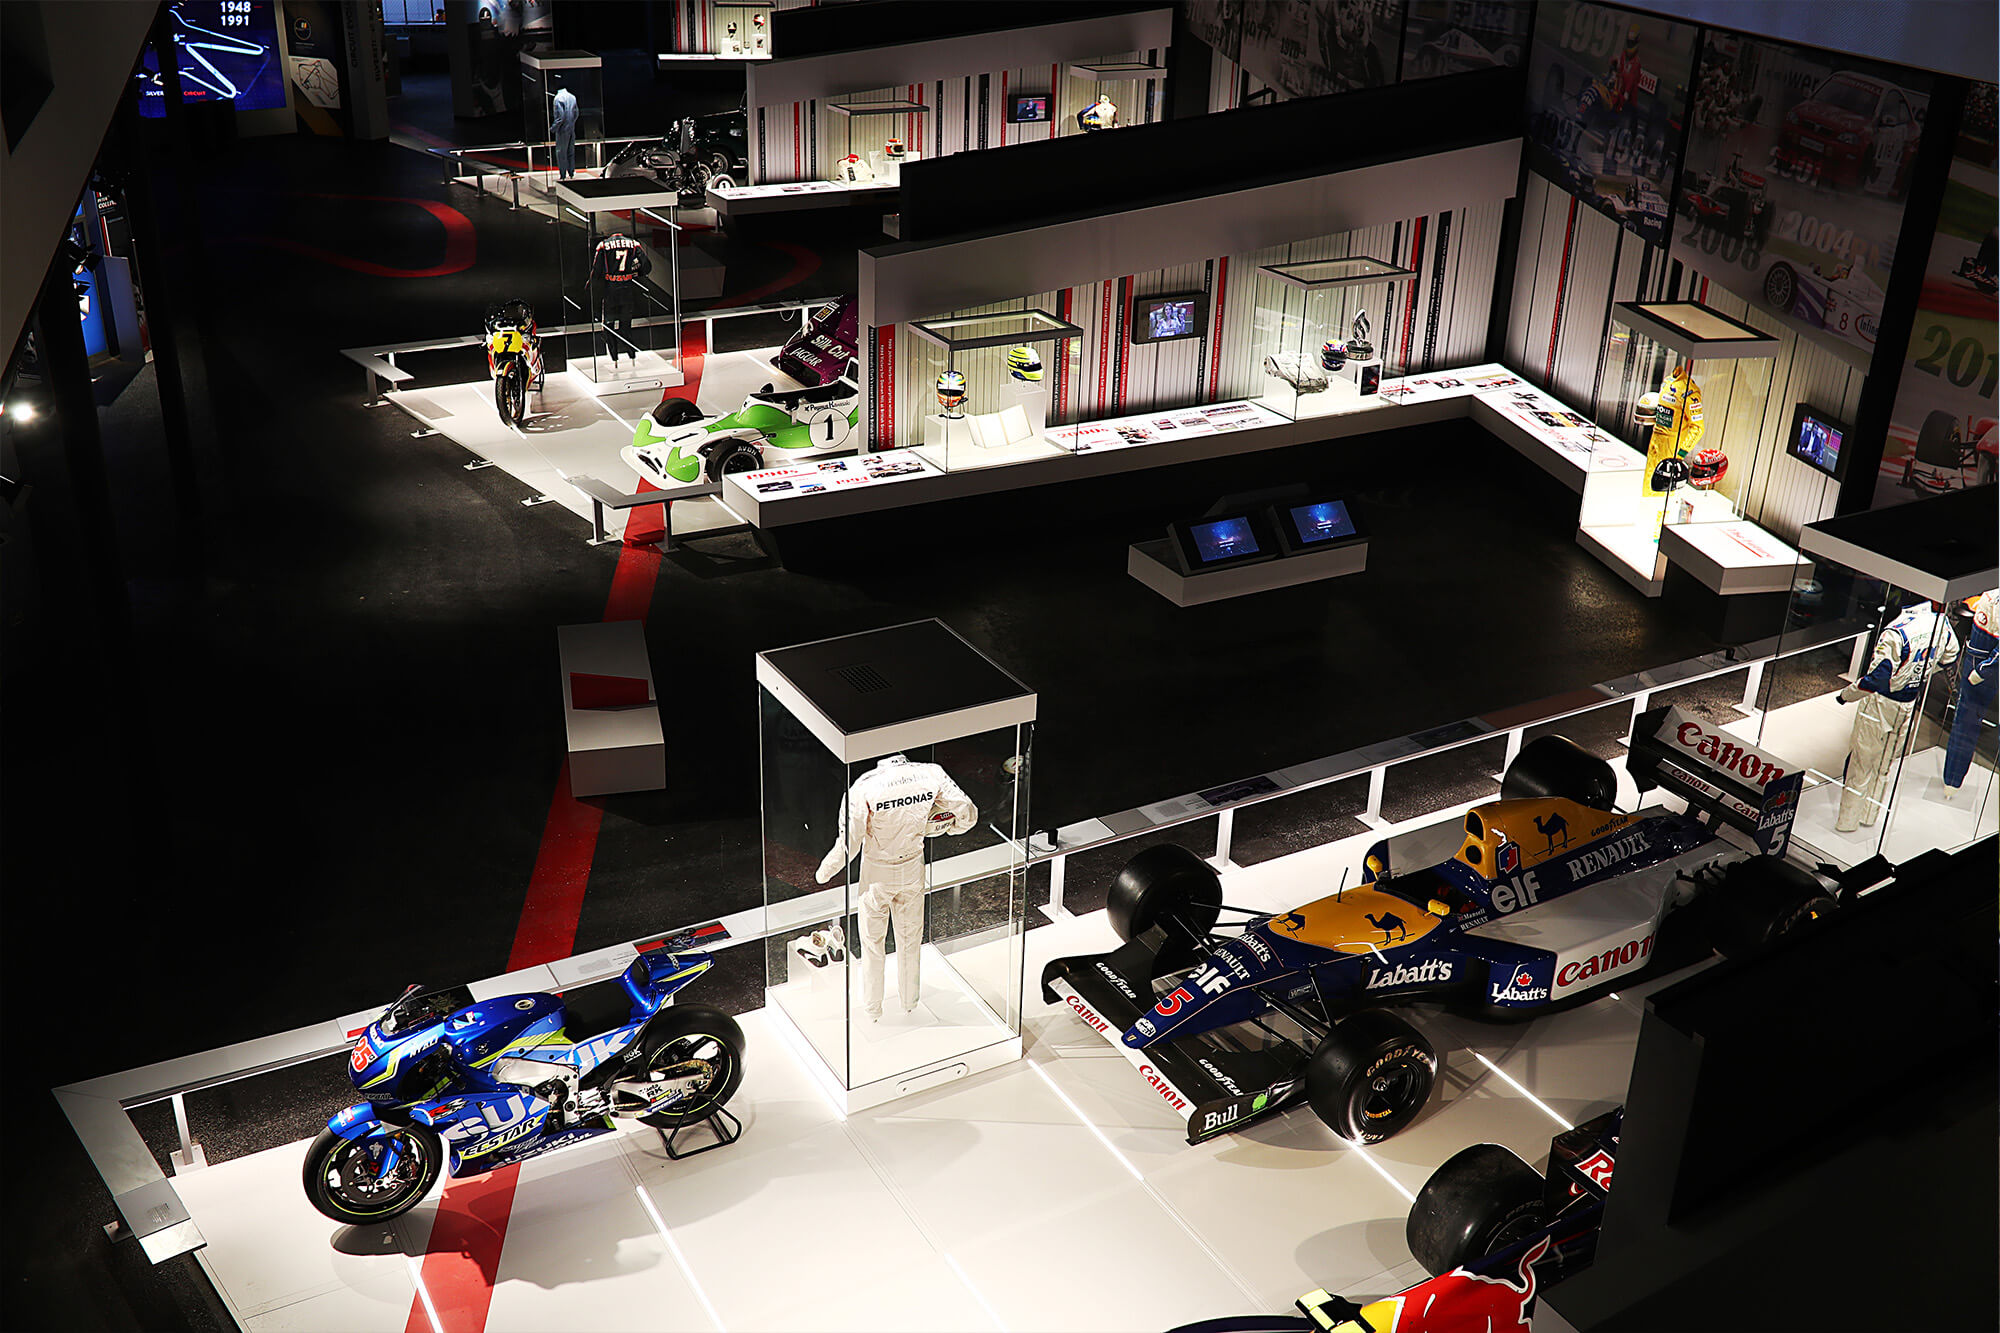 inside the Silverstone experience museum